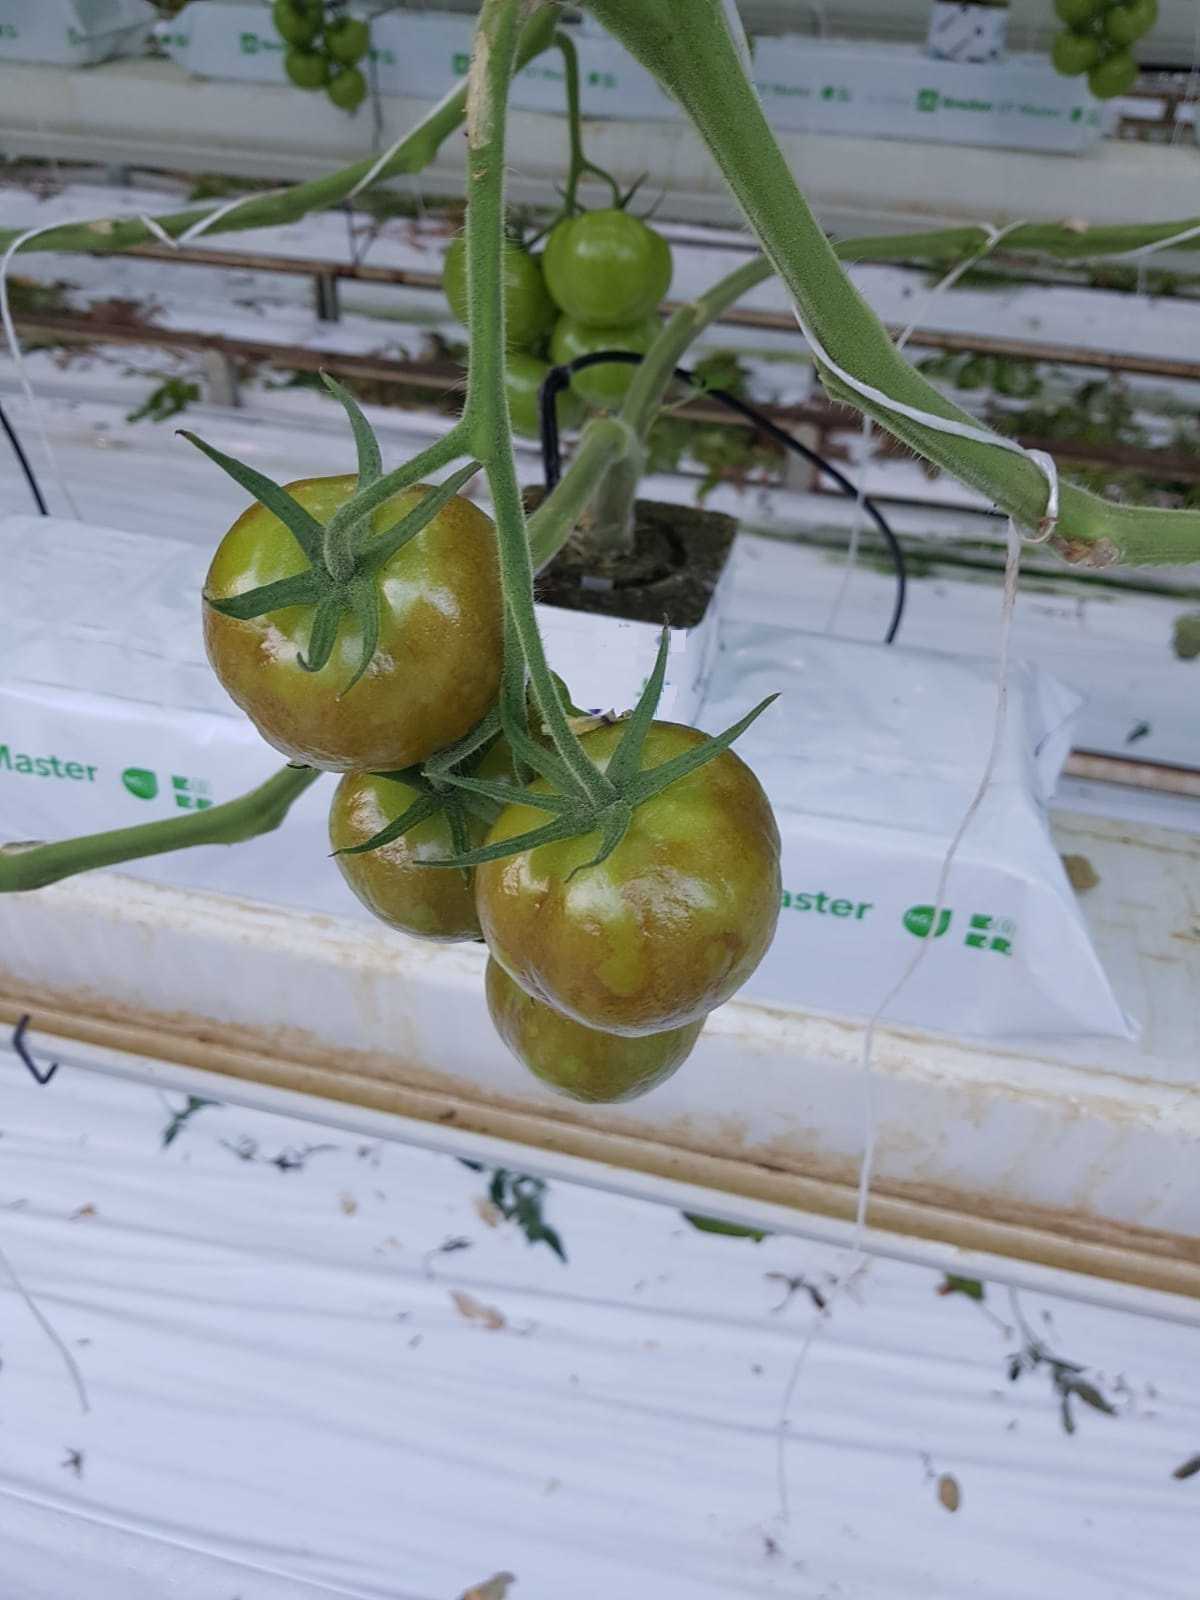 Further developed brown wrinkled patches on developing green fruit